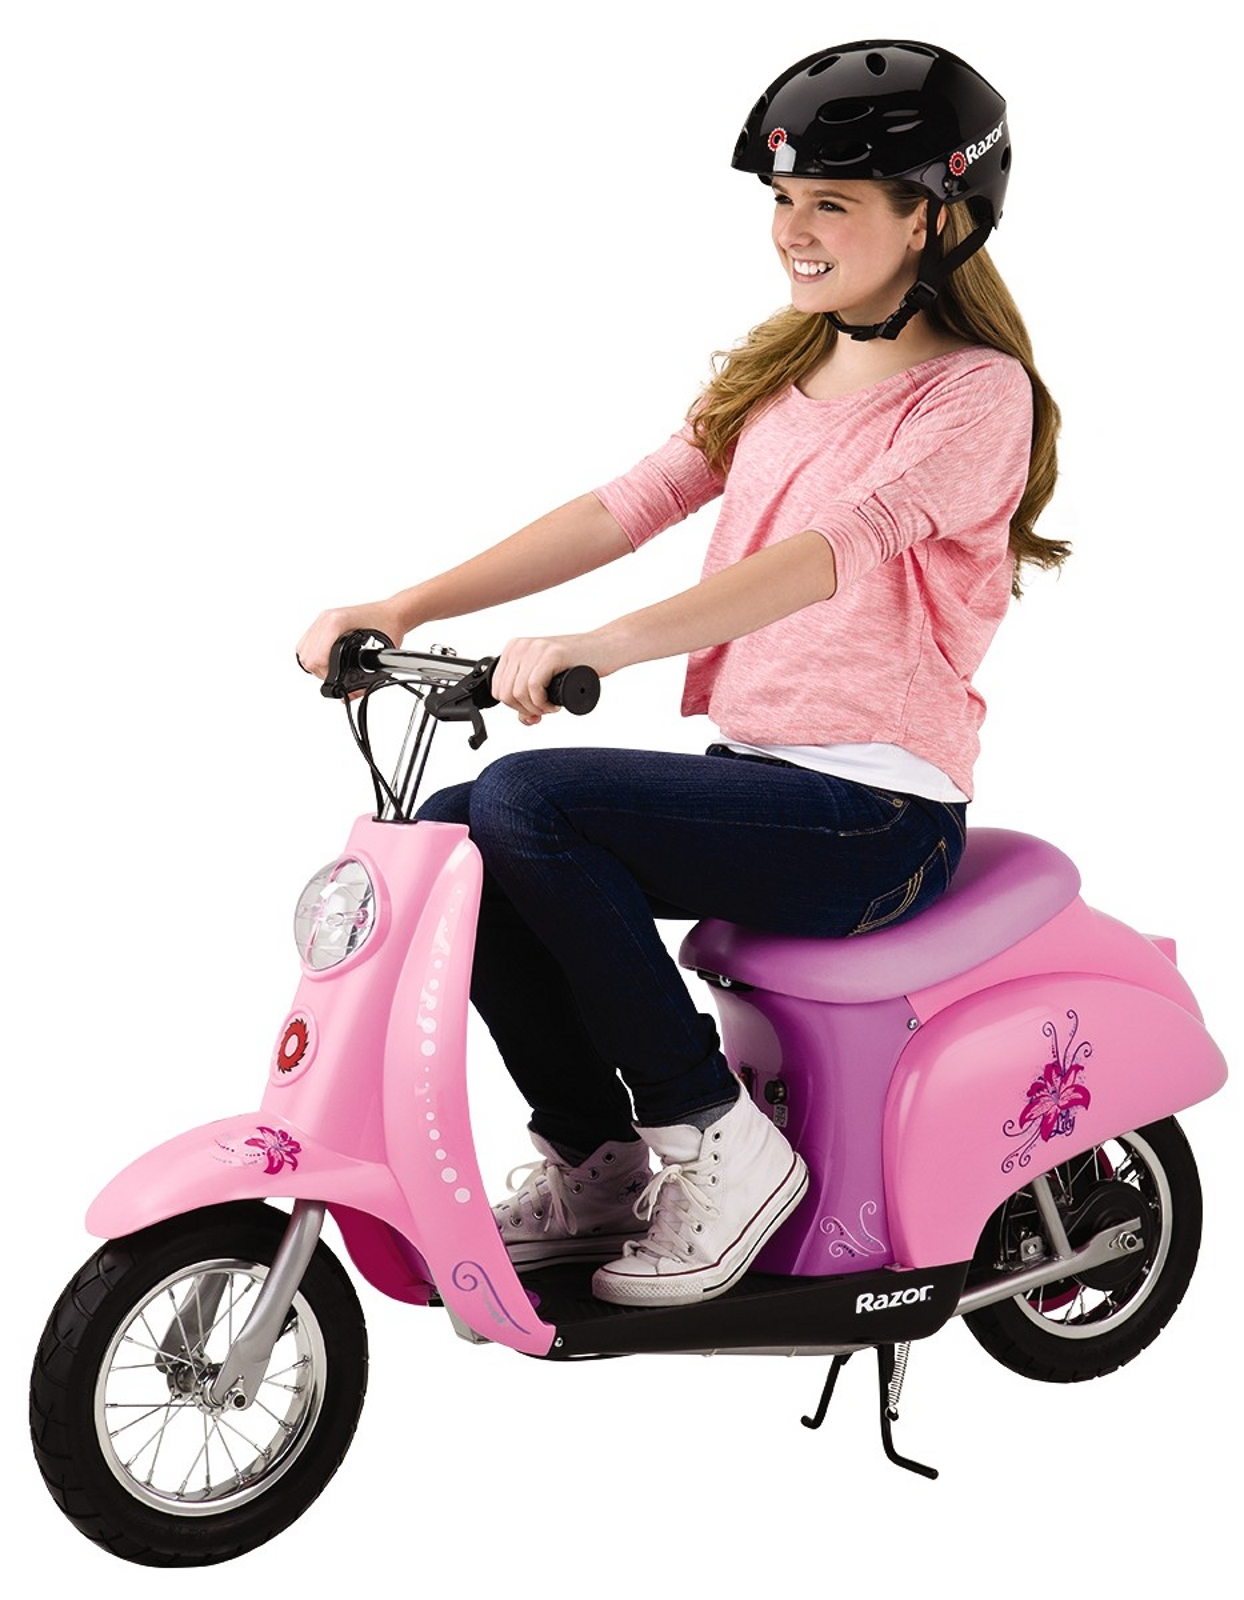 Razor™ 15130665 24V Pocket Mod Lily Euro Electric Scooter in Pink